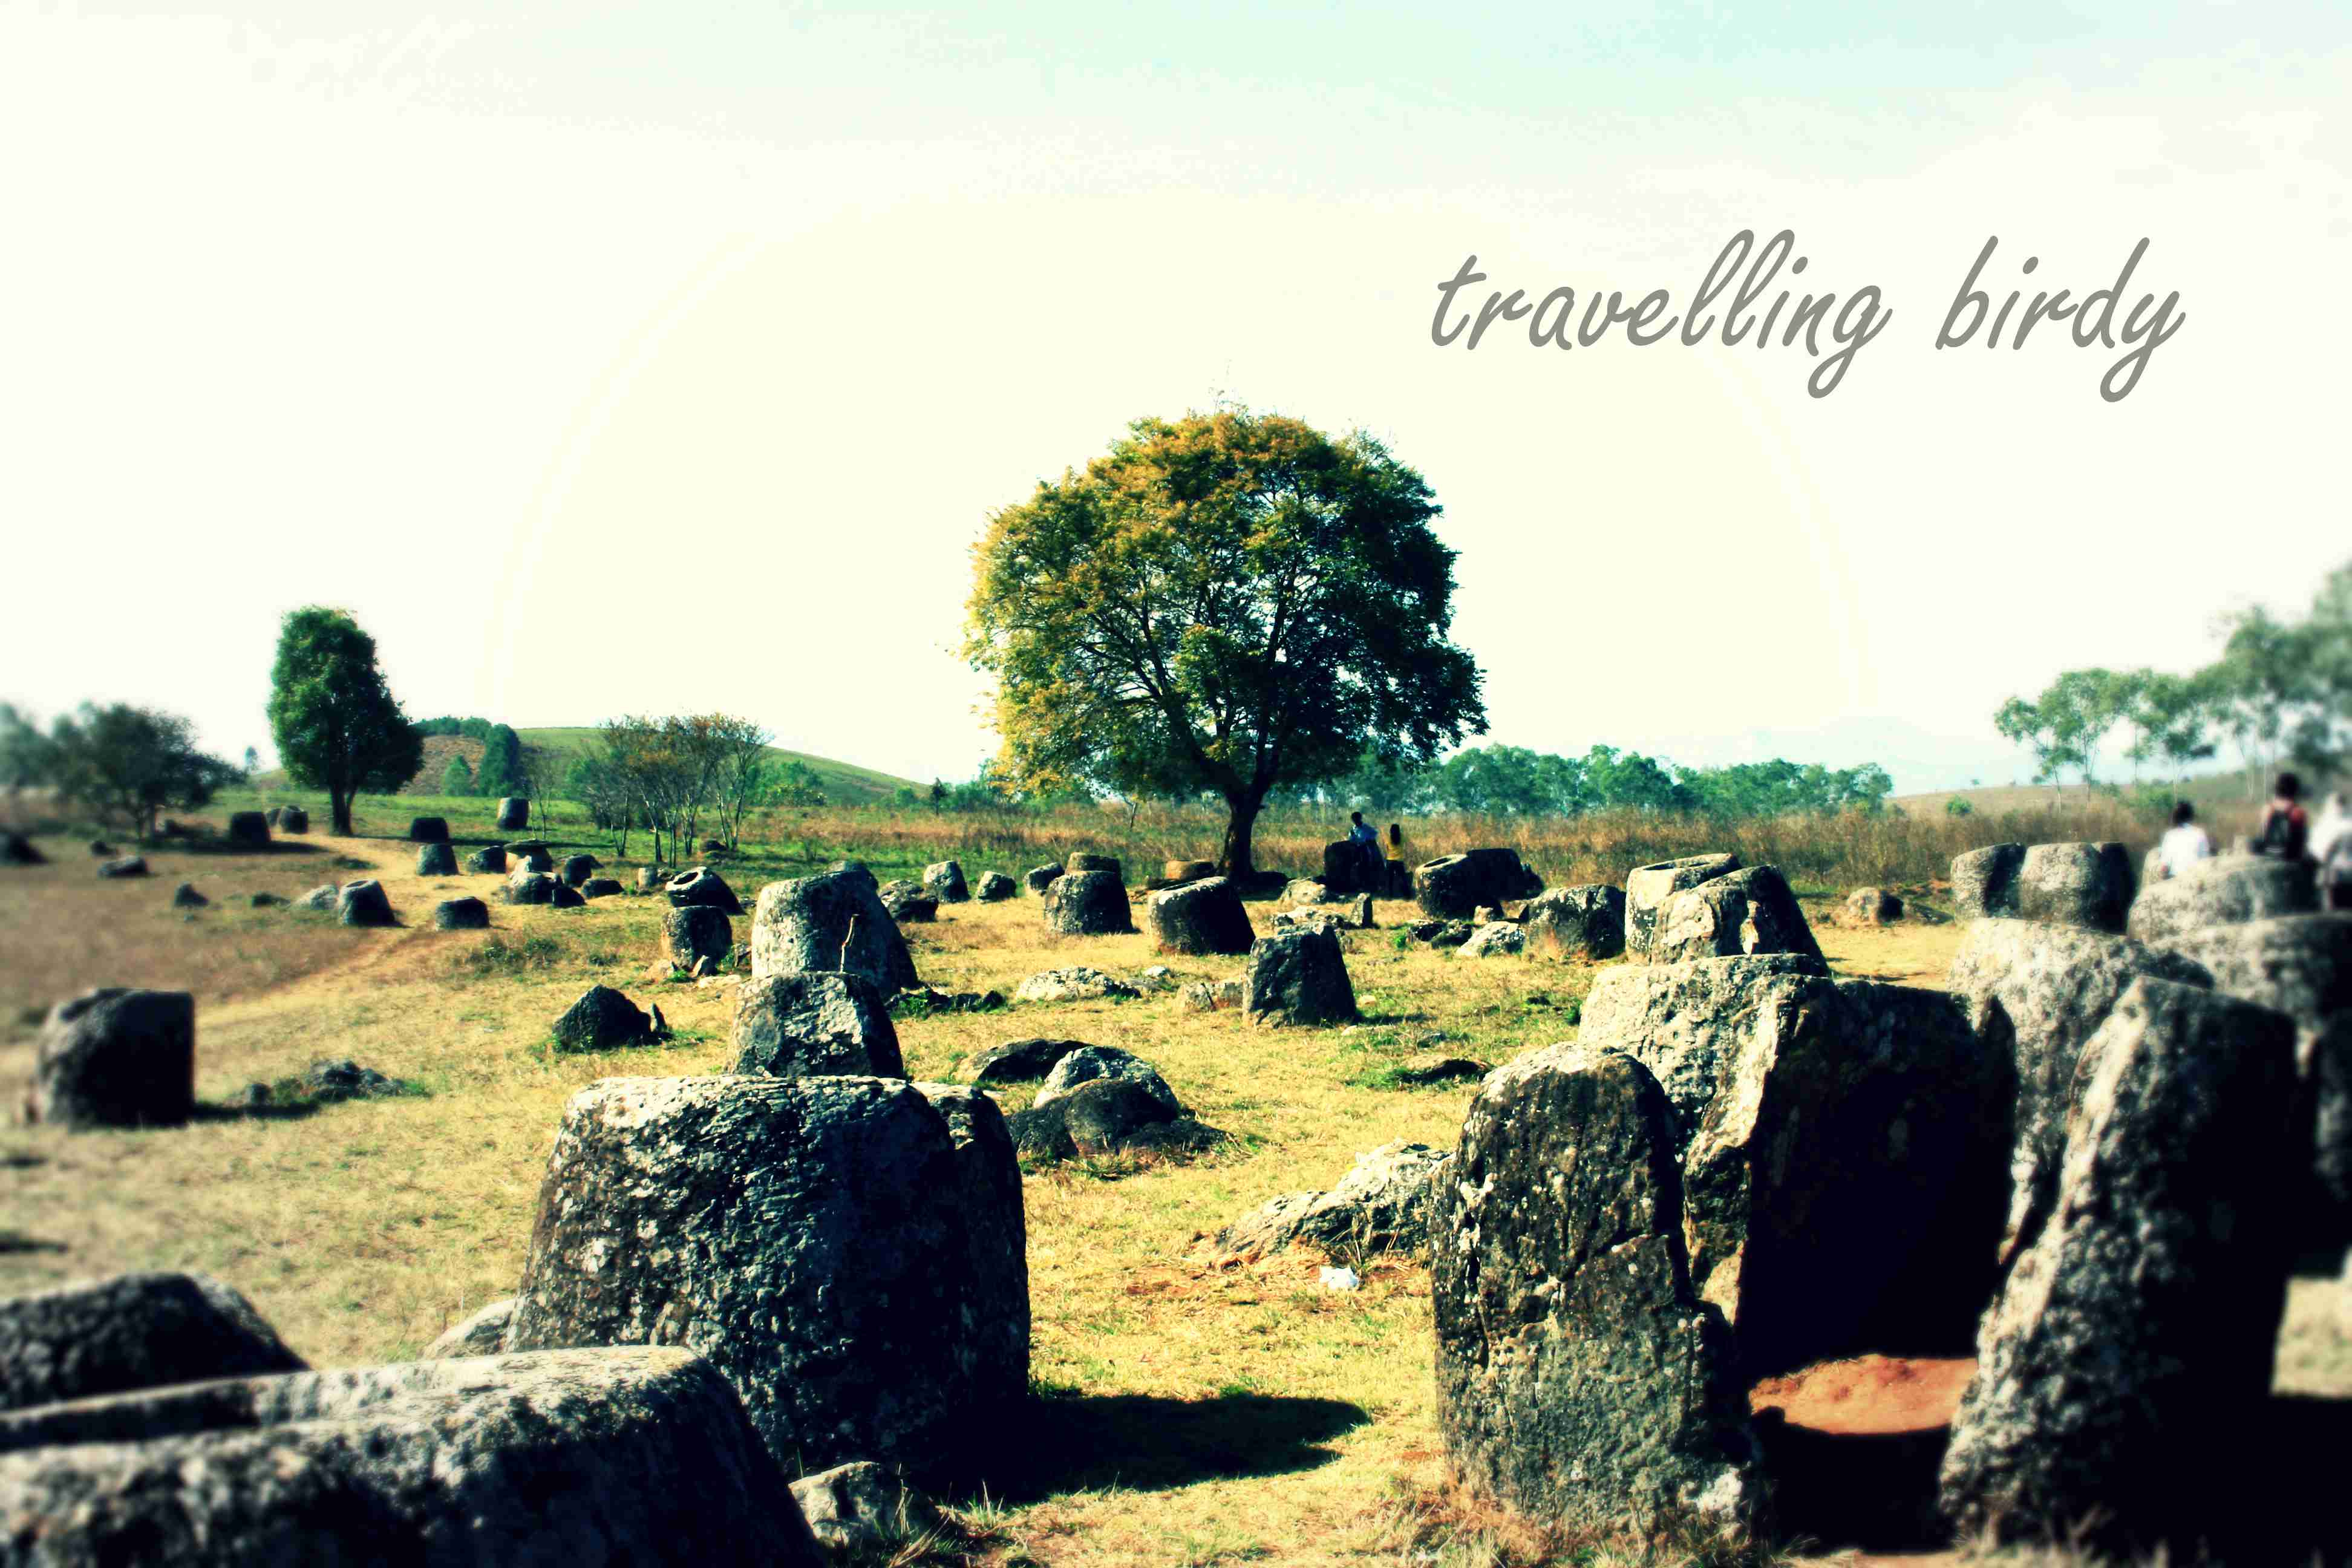 The plaintive sight that greets you at the Plain of Jars